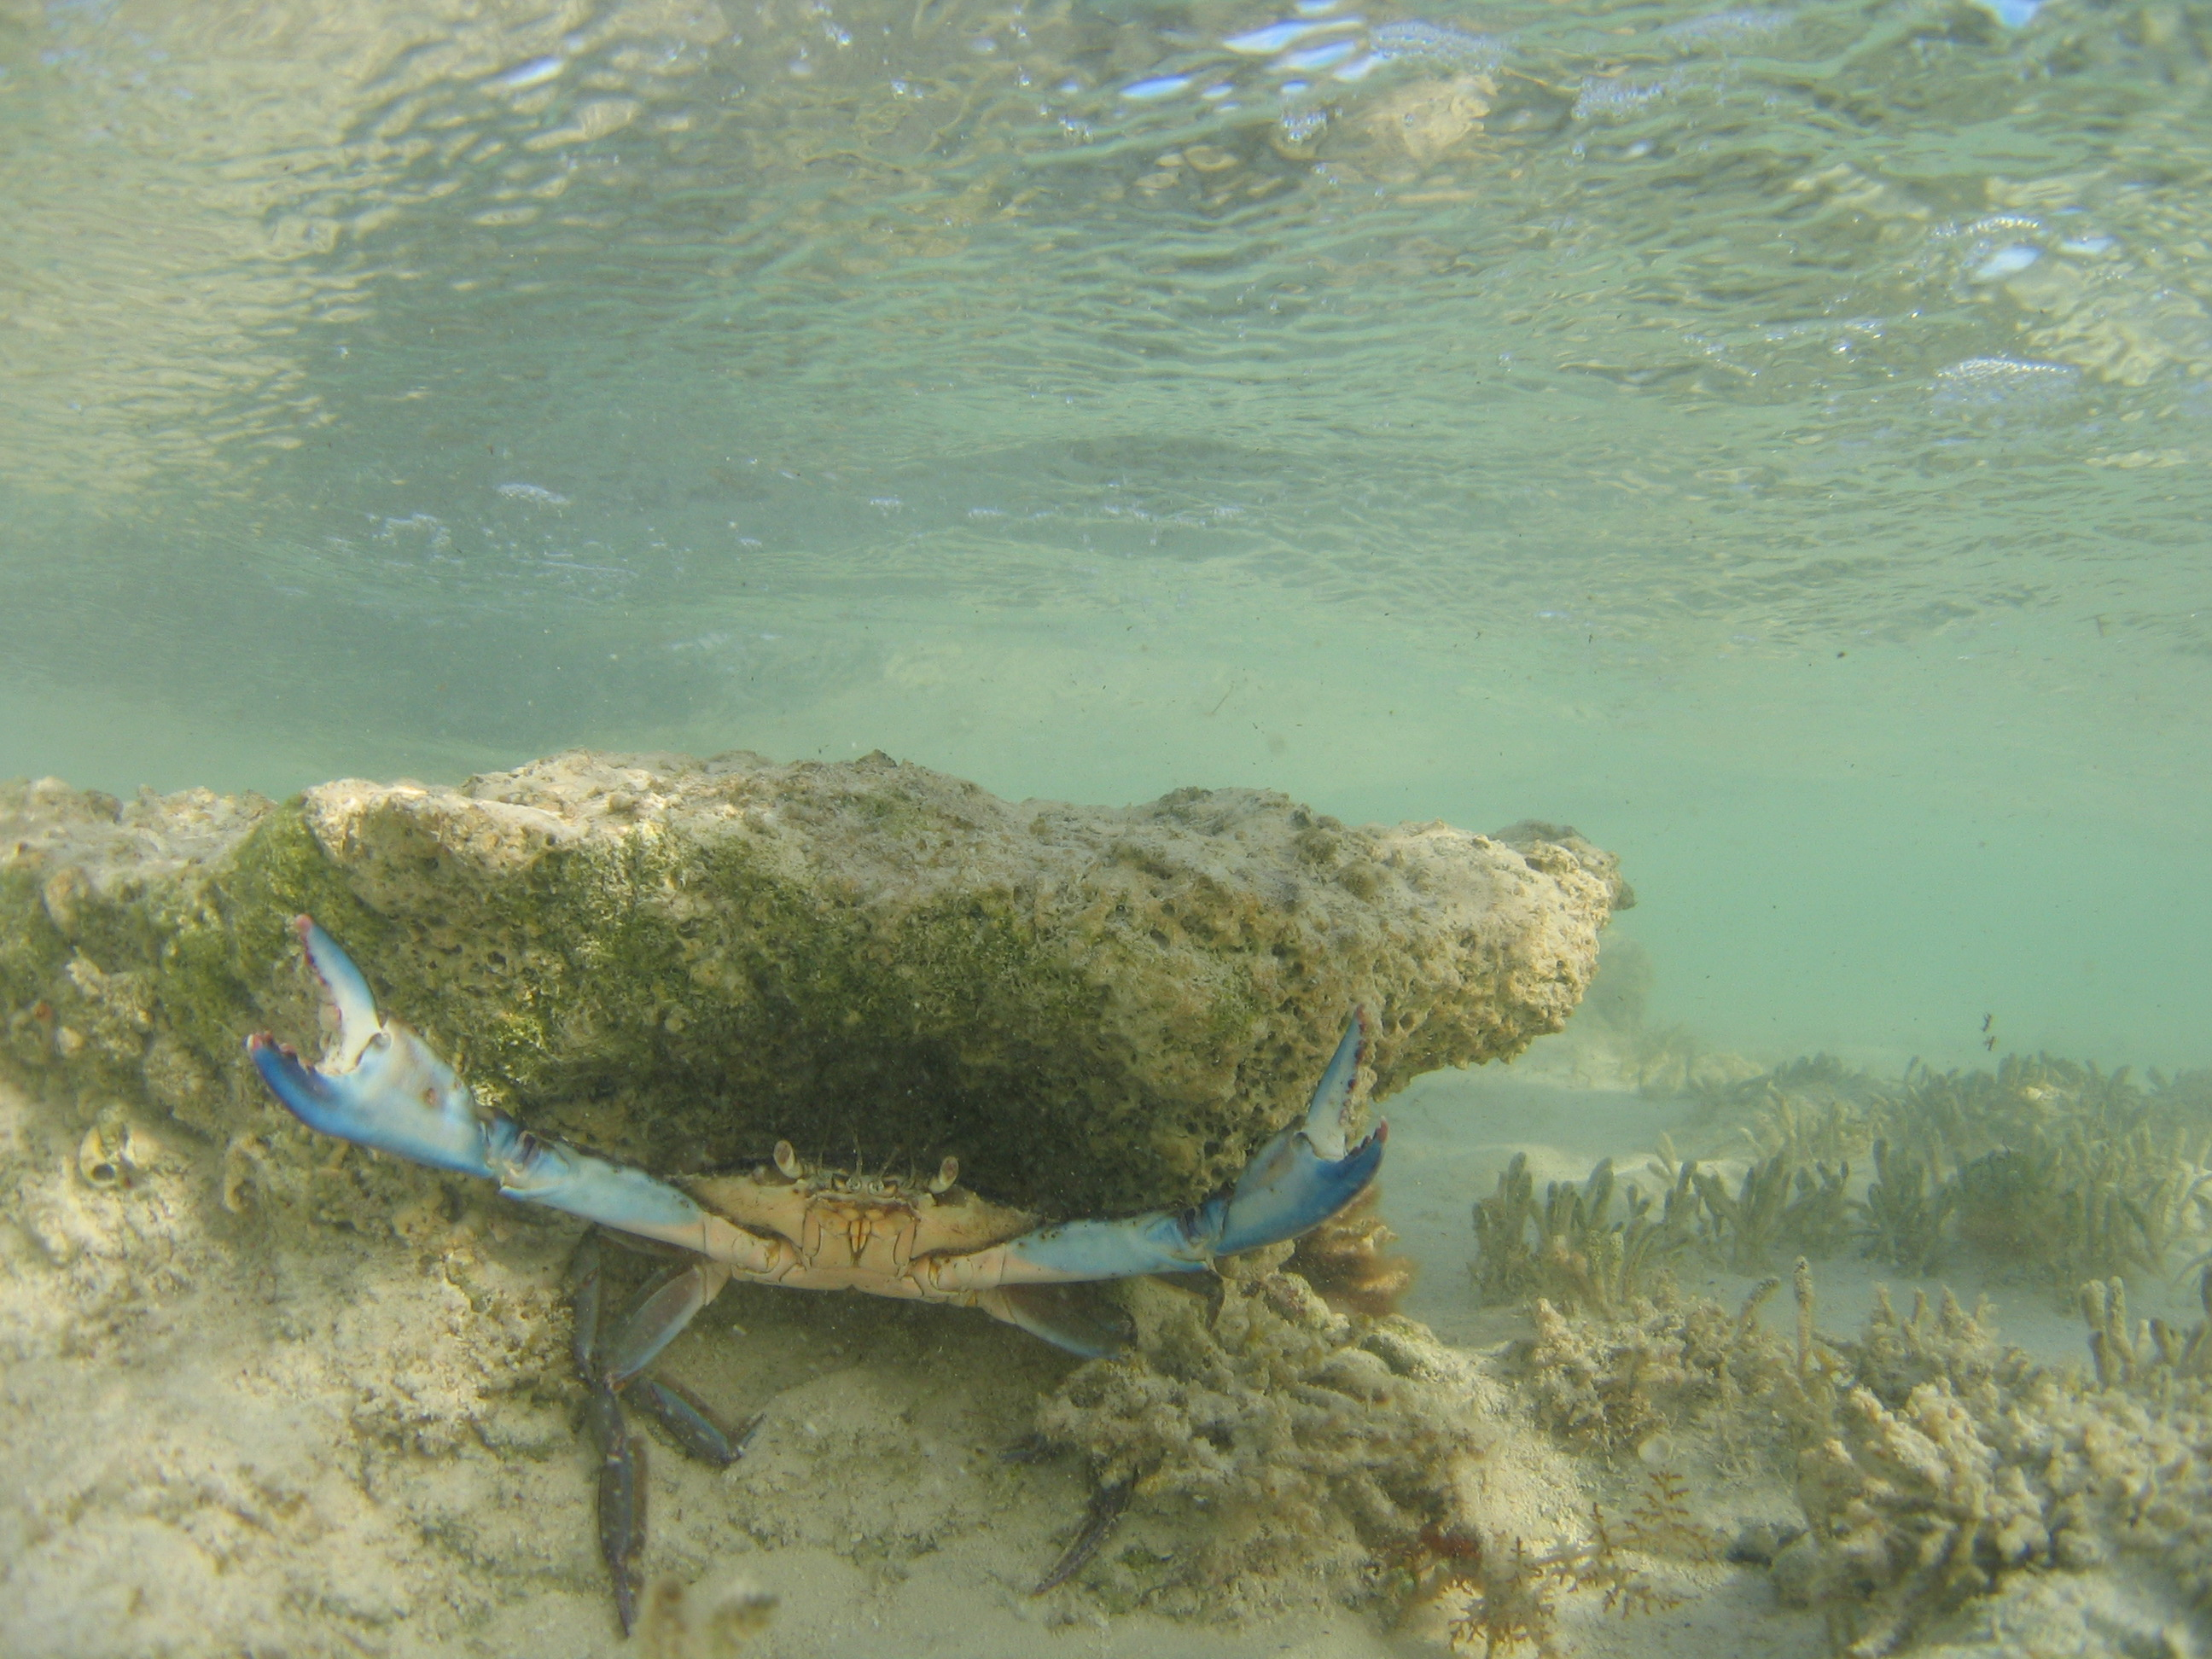 A Blue Crab in Full Defense Mode!  Have you ever been wading the flats and noticed a blue crab in